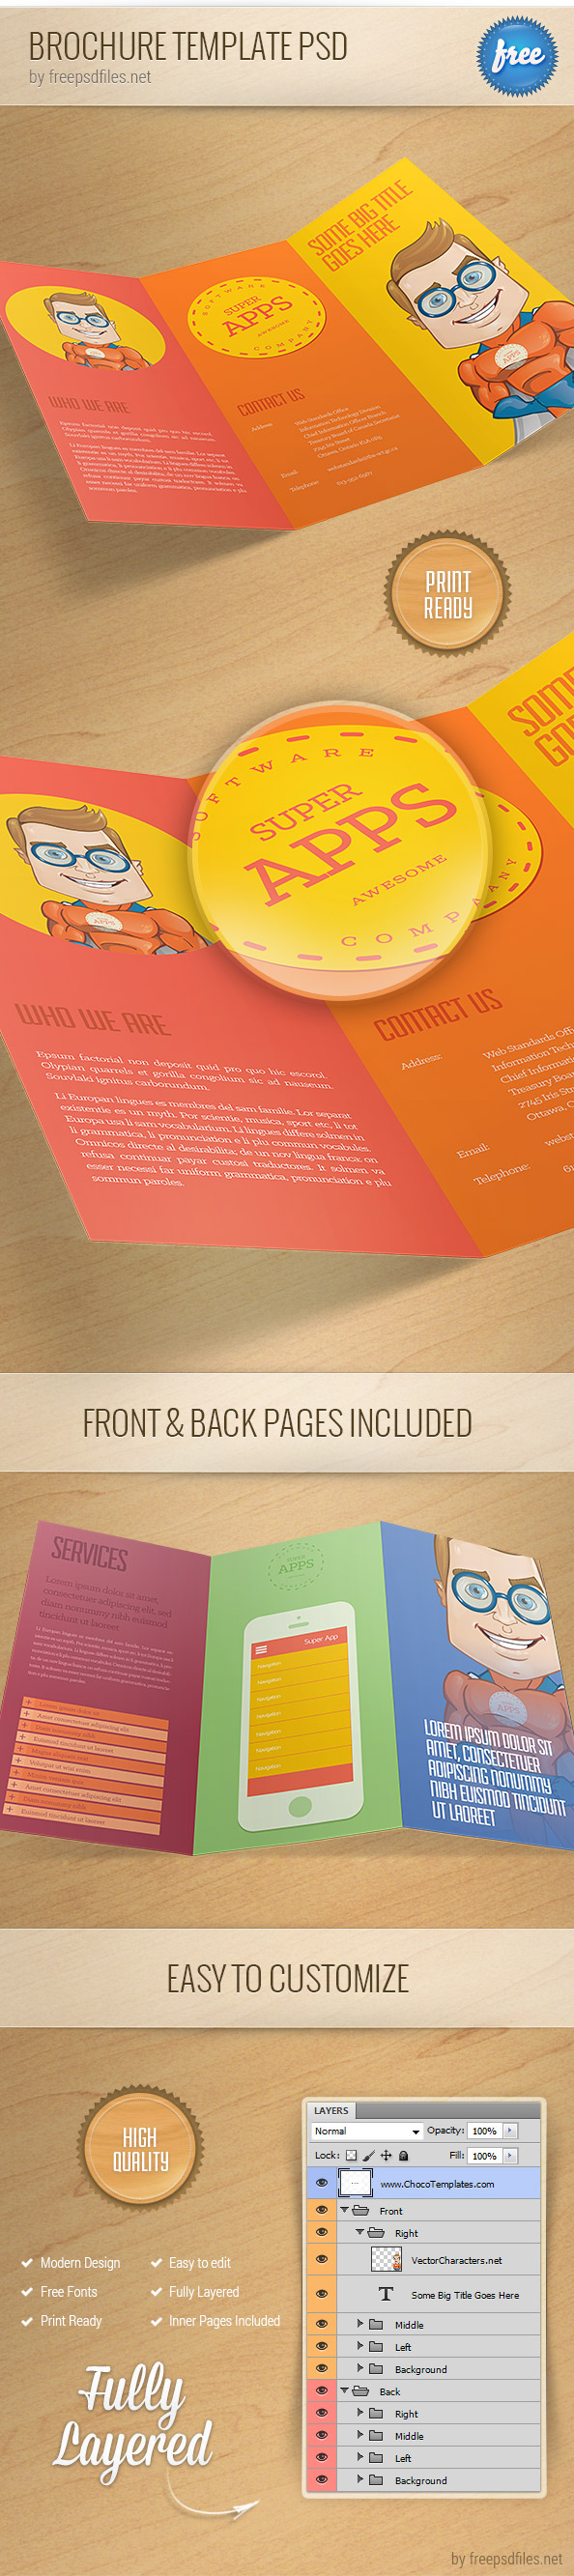 Beautiful free psd brochure design templates 2014 for Brochure design psd templates